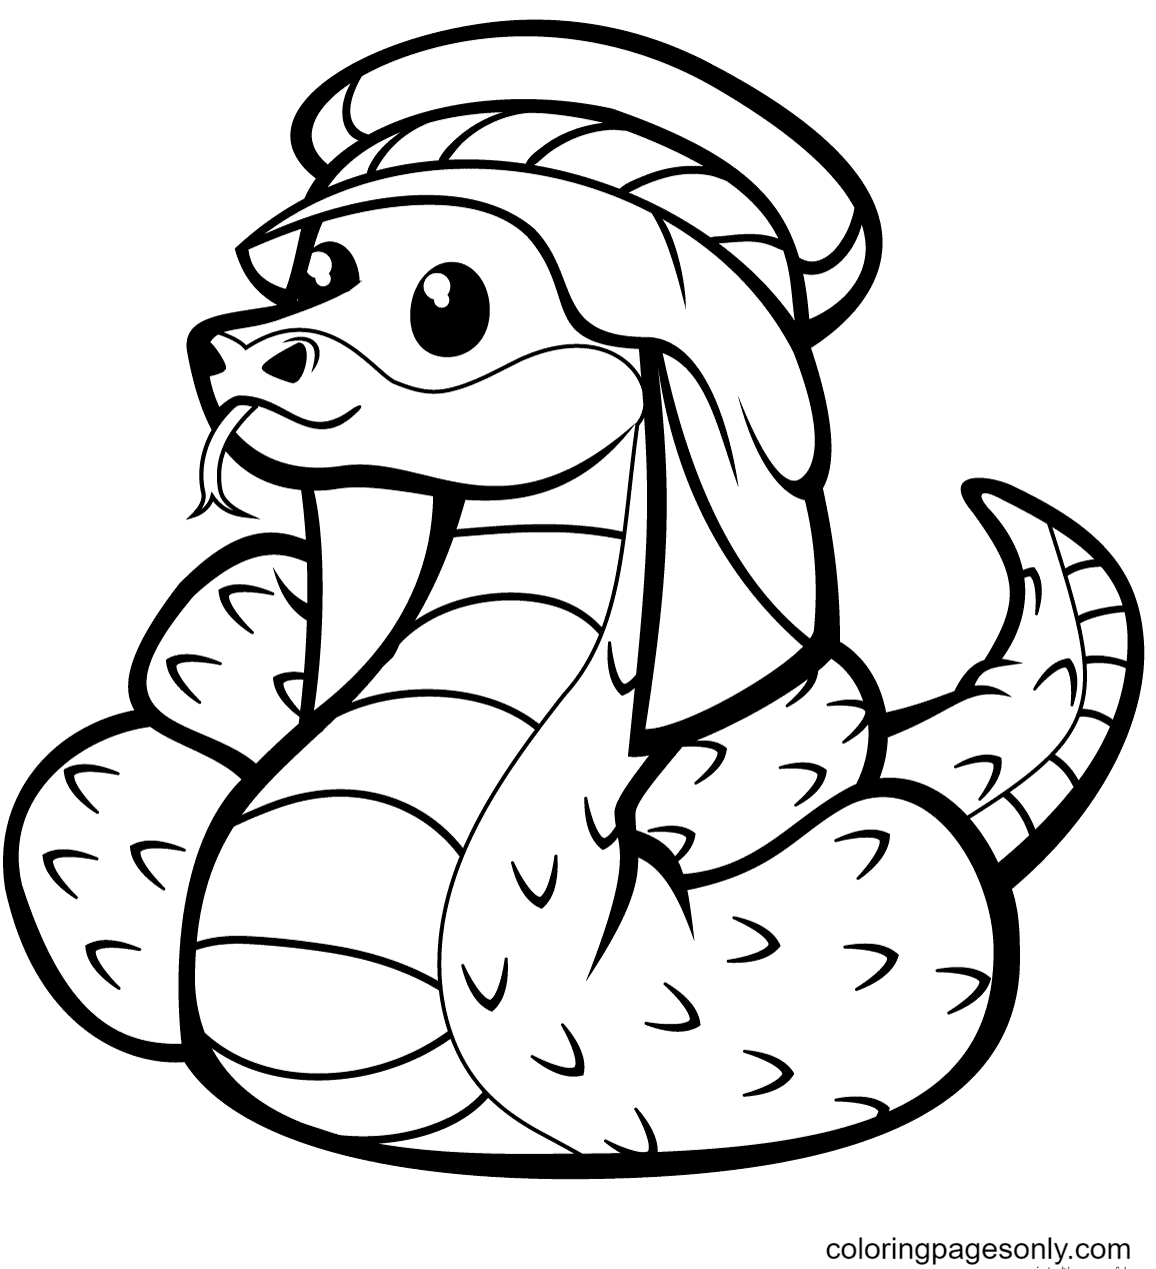 Cute Snake in Kufia Coloring Page